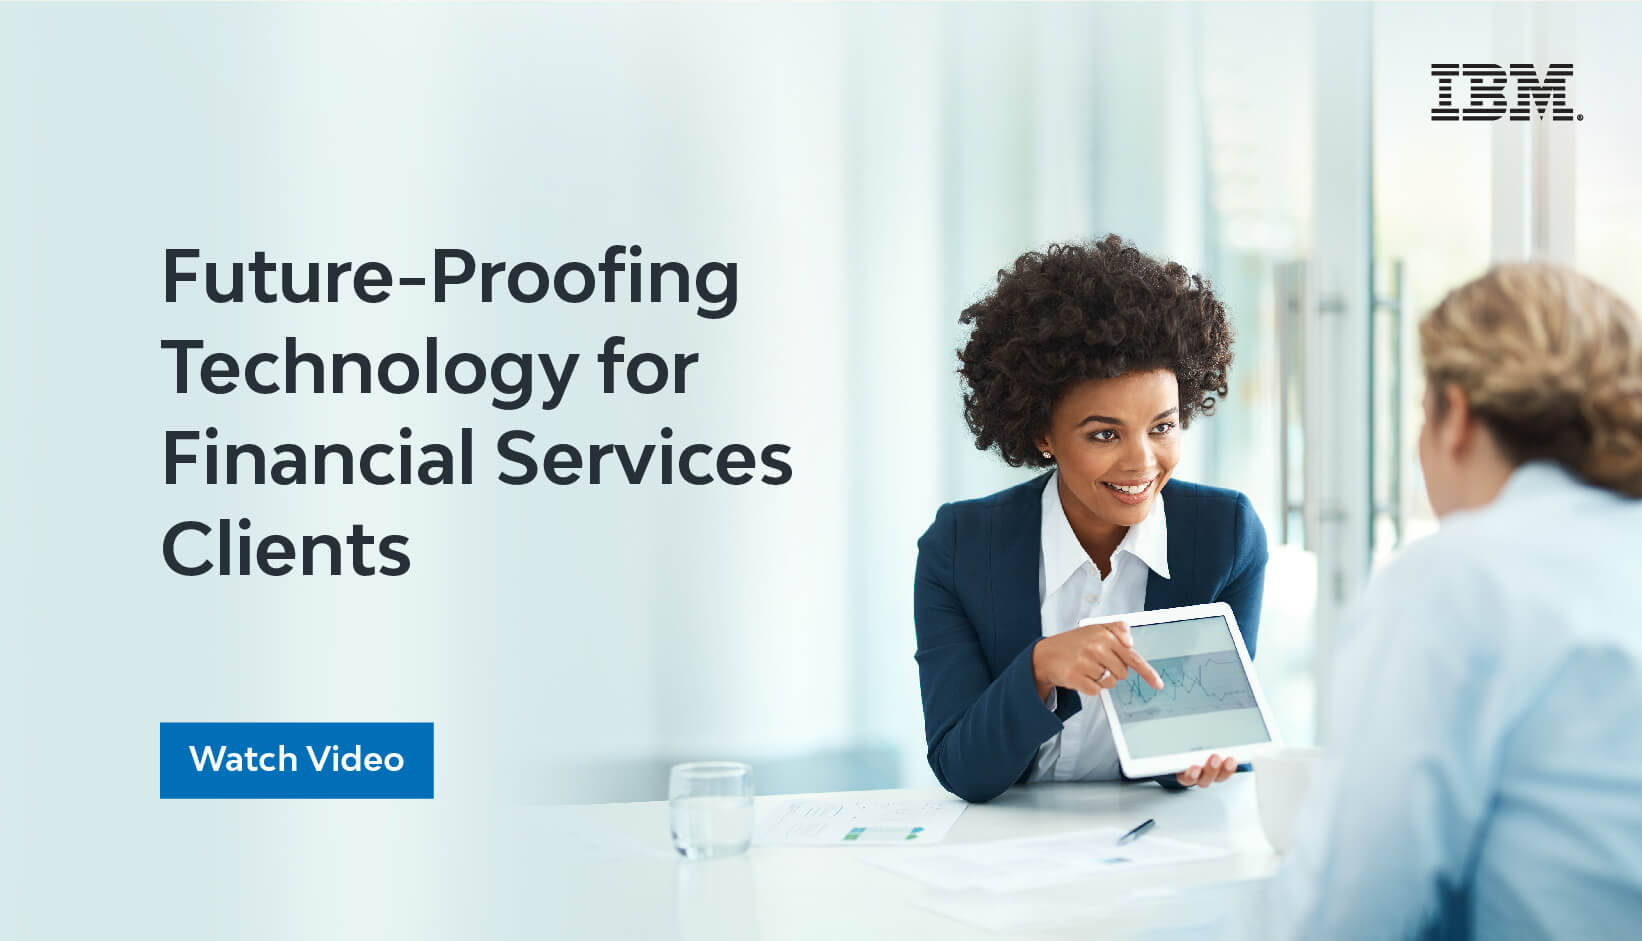 Future-Proofing Technology for Financial Services Clients